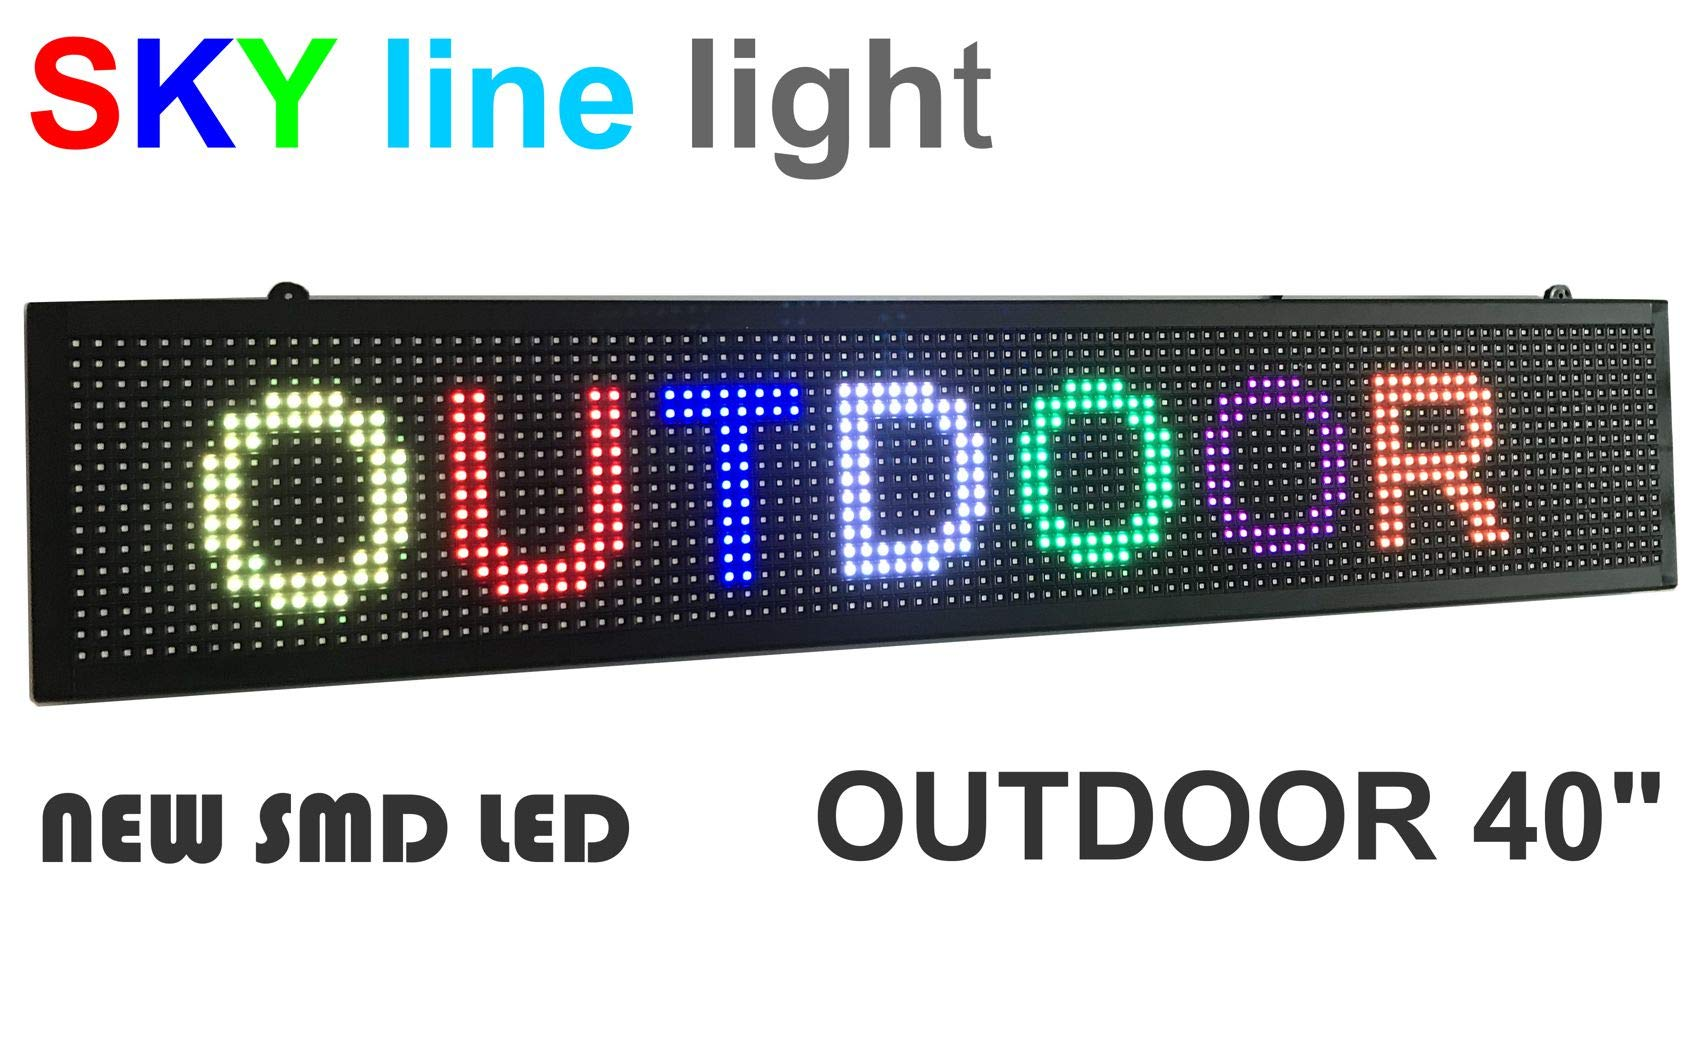 Outdoor 40'' LED Display Full Color, LED Scrolling Message Sign, Bright and in New Light housing